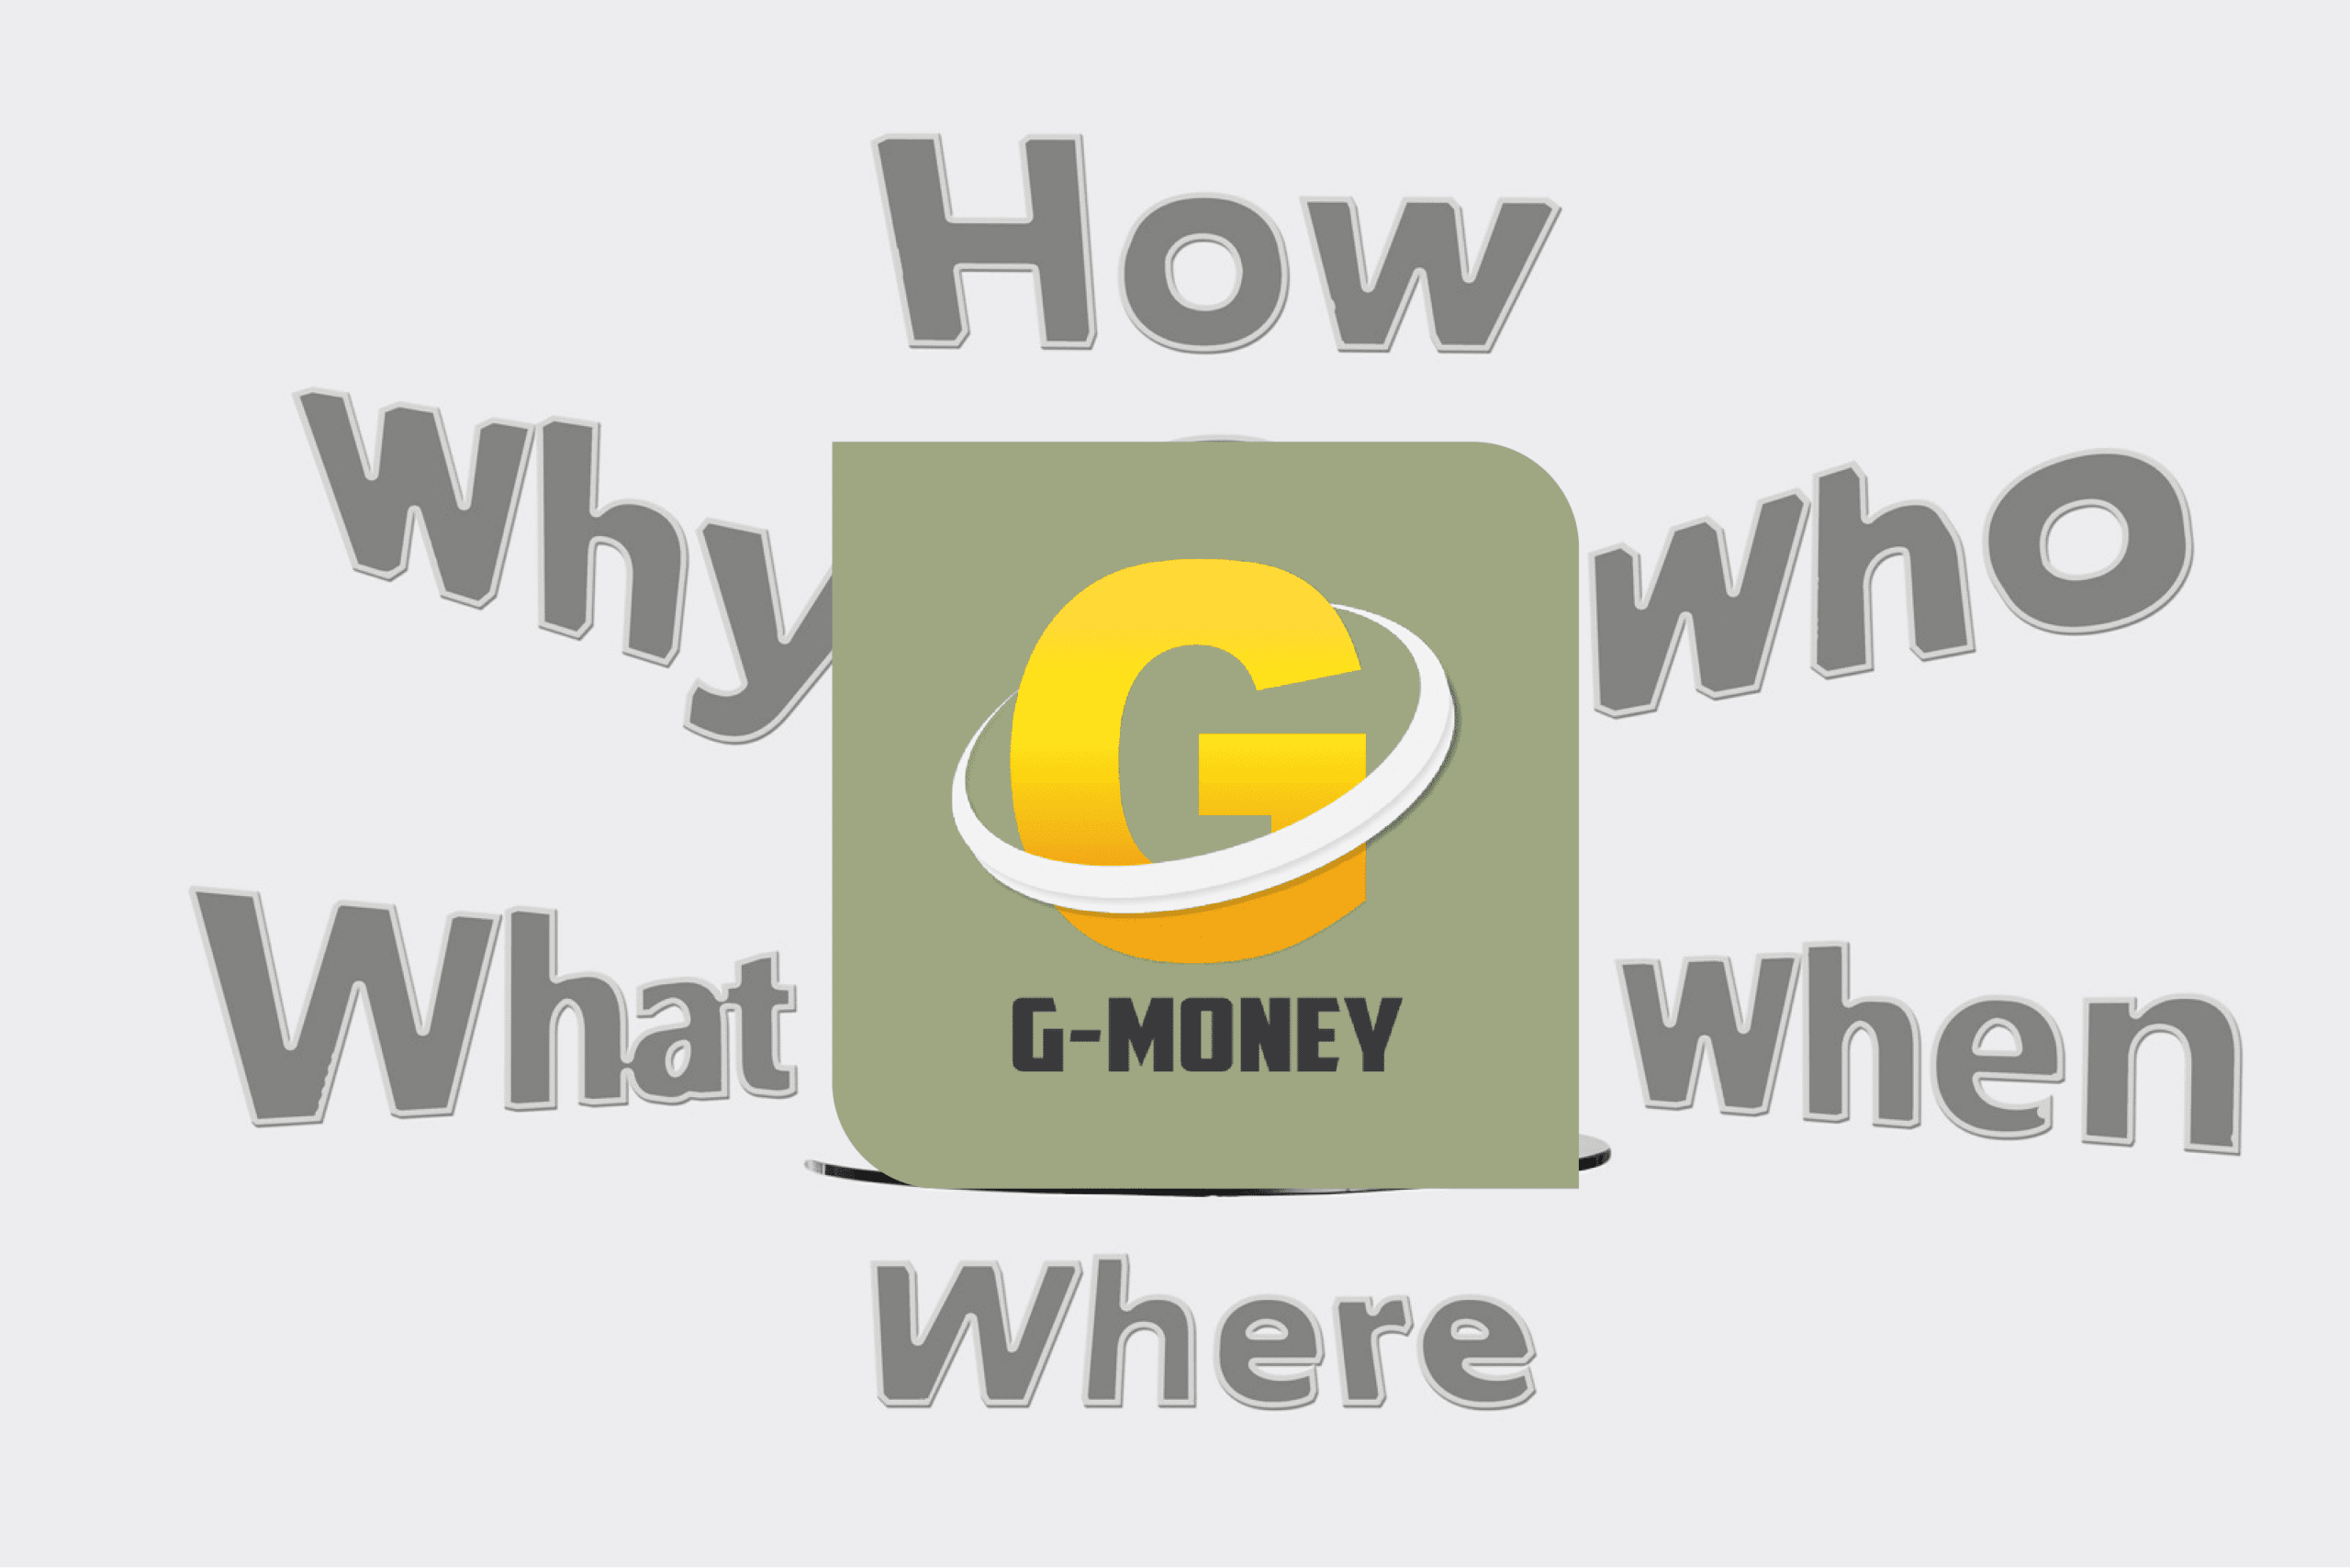 10 G-Money frequently asked questions and the answers you want